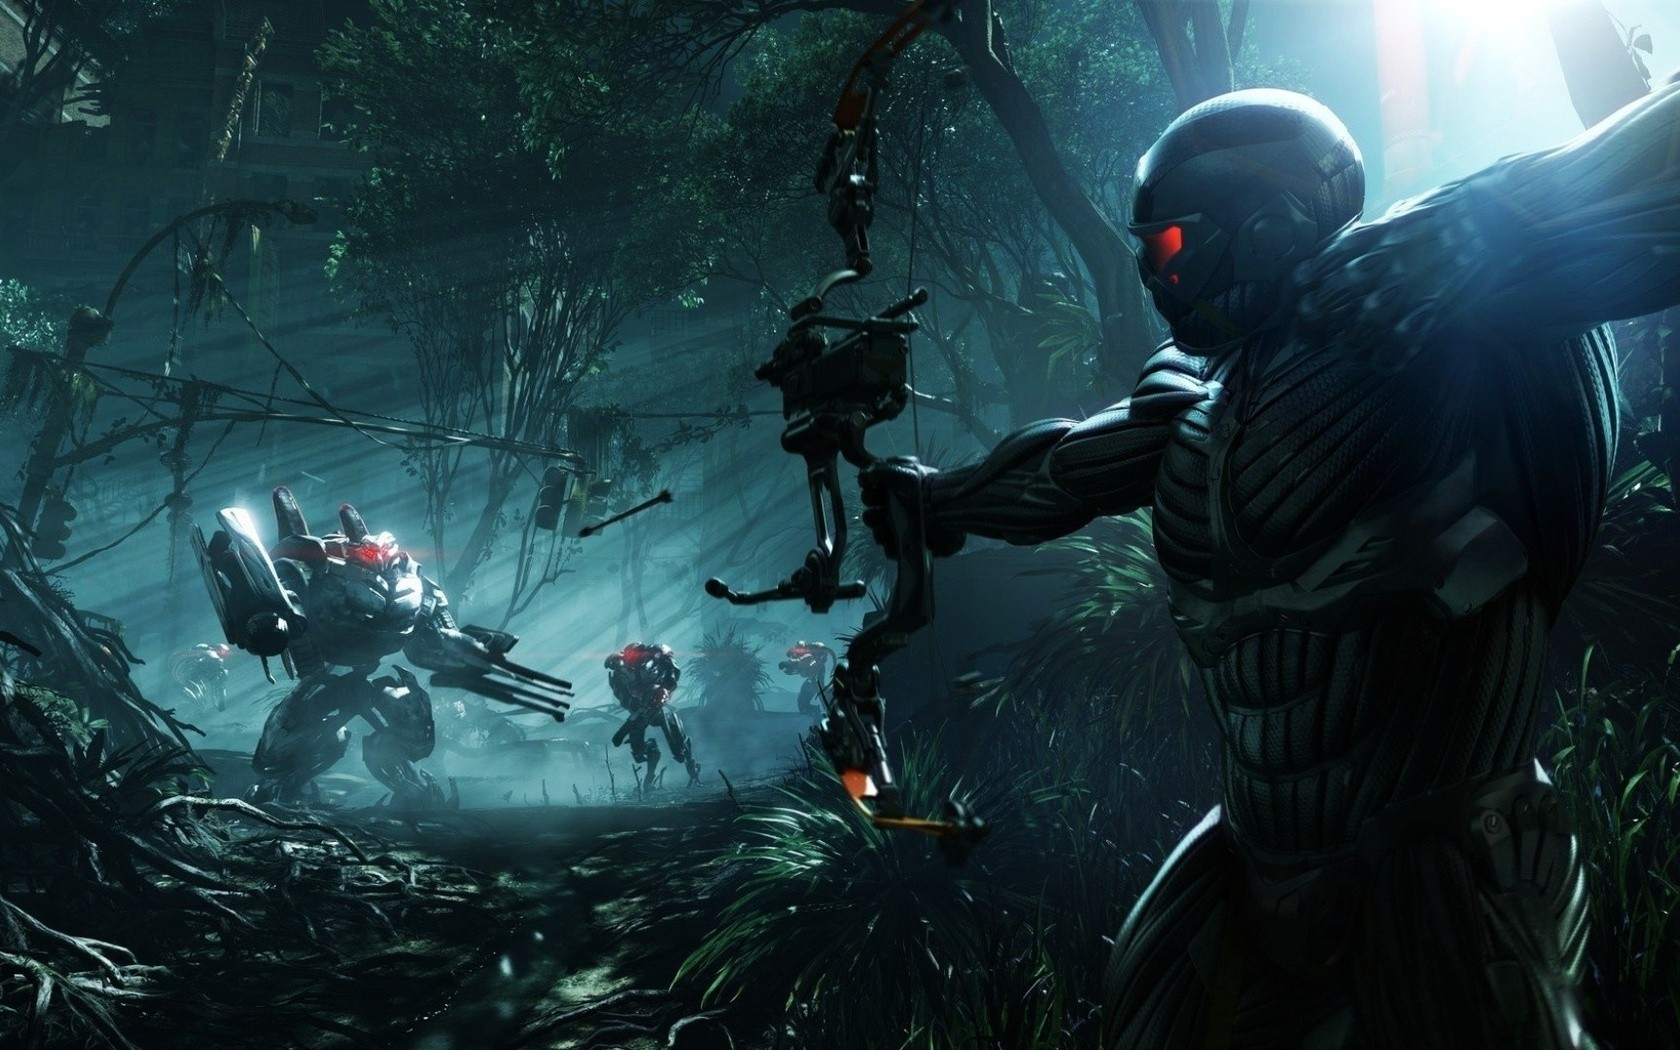 Crysis 3 2013 Video Game 4k Hd Desktop Wallpaper For 4k: Game Screensavers - HD Desktop Wallpapers